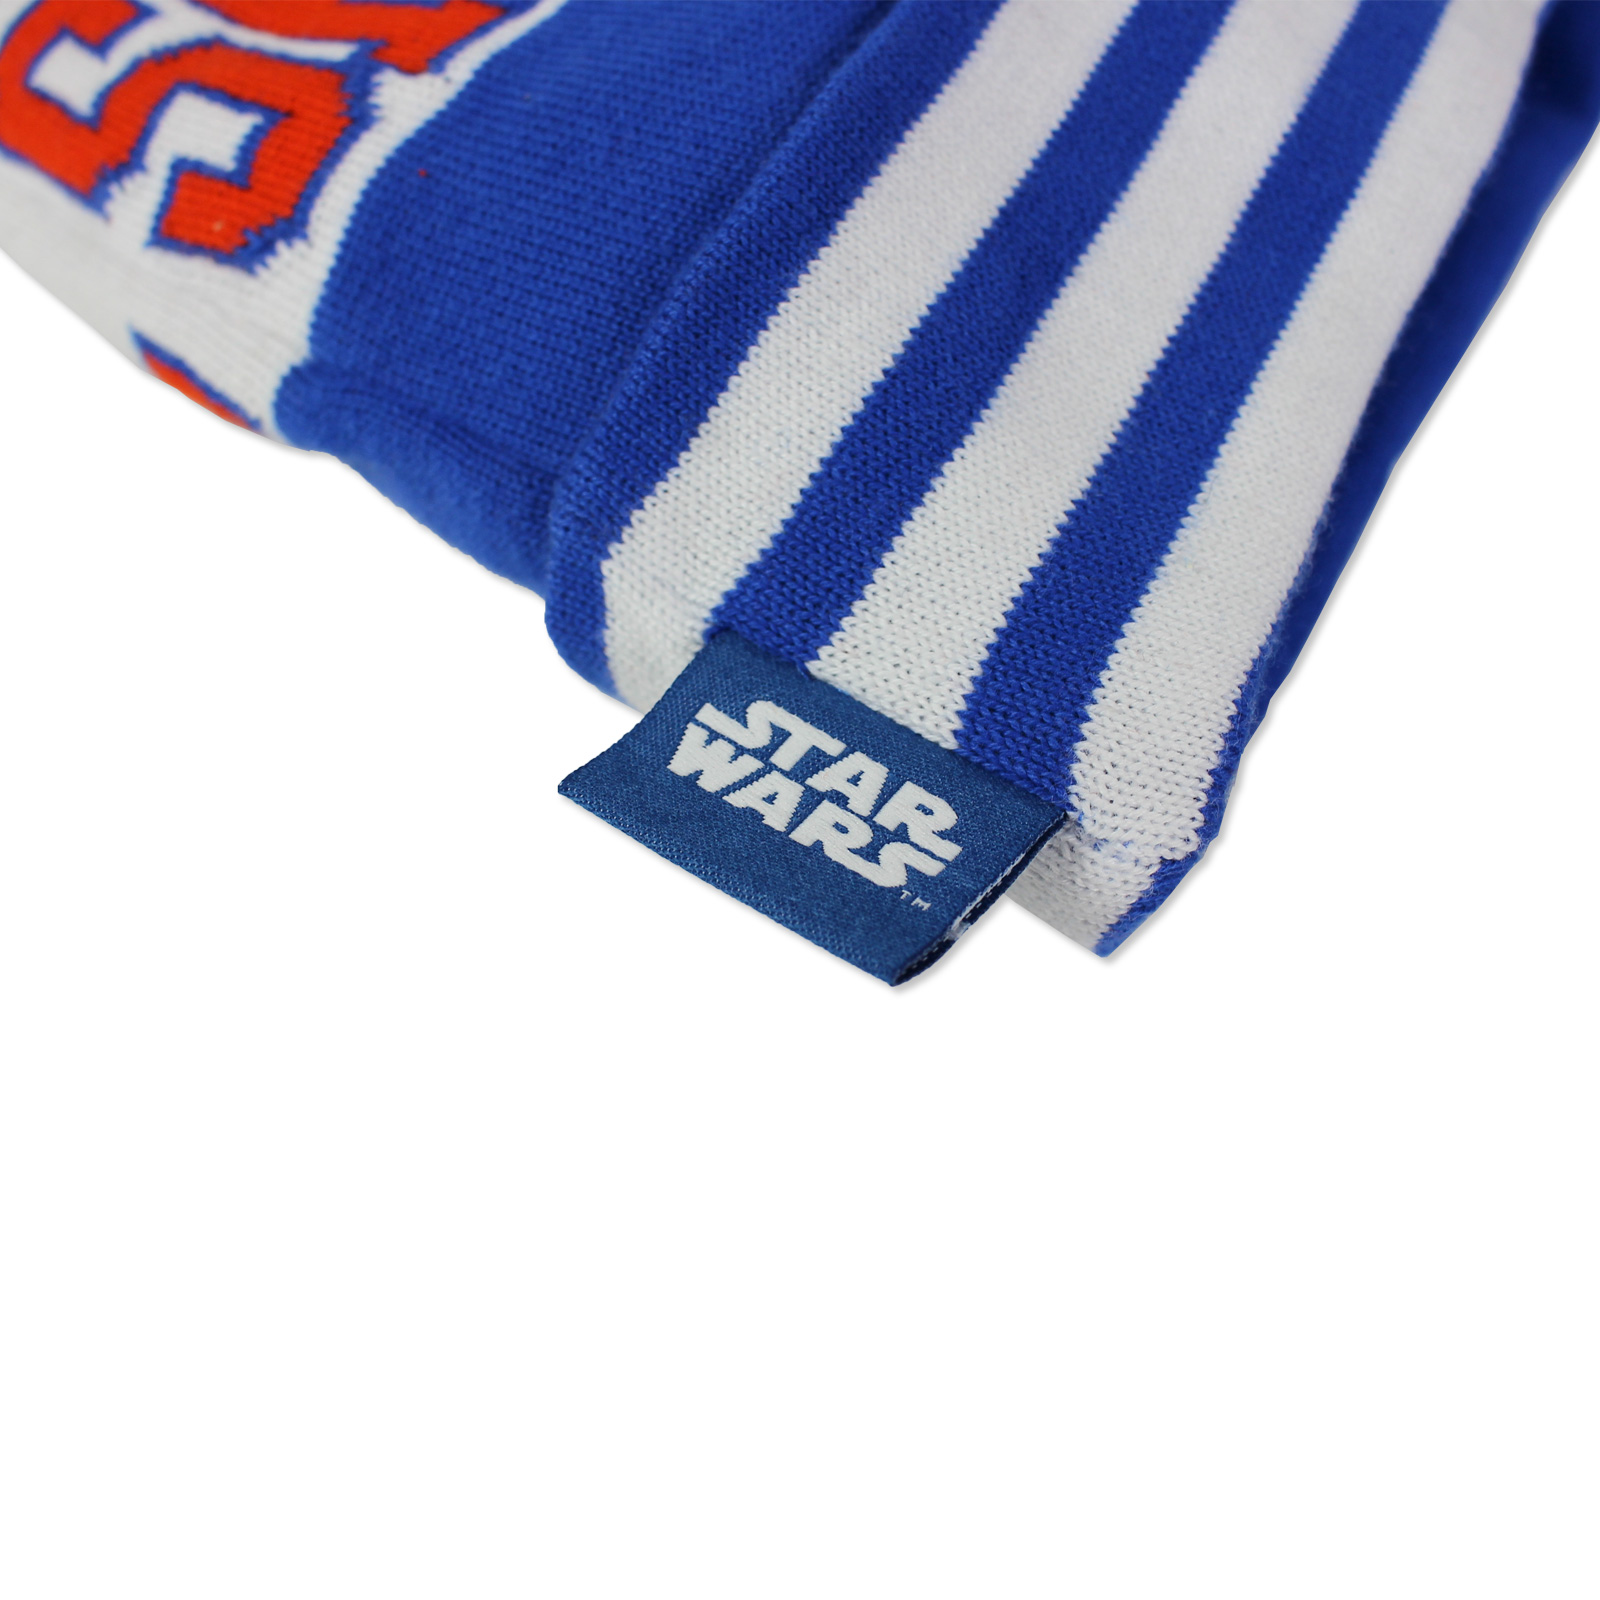 b5fa13f27b4224 adidas Originals X Star Wars Luke Skywalker Bommel Winter Mütze Beanie  Limited